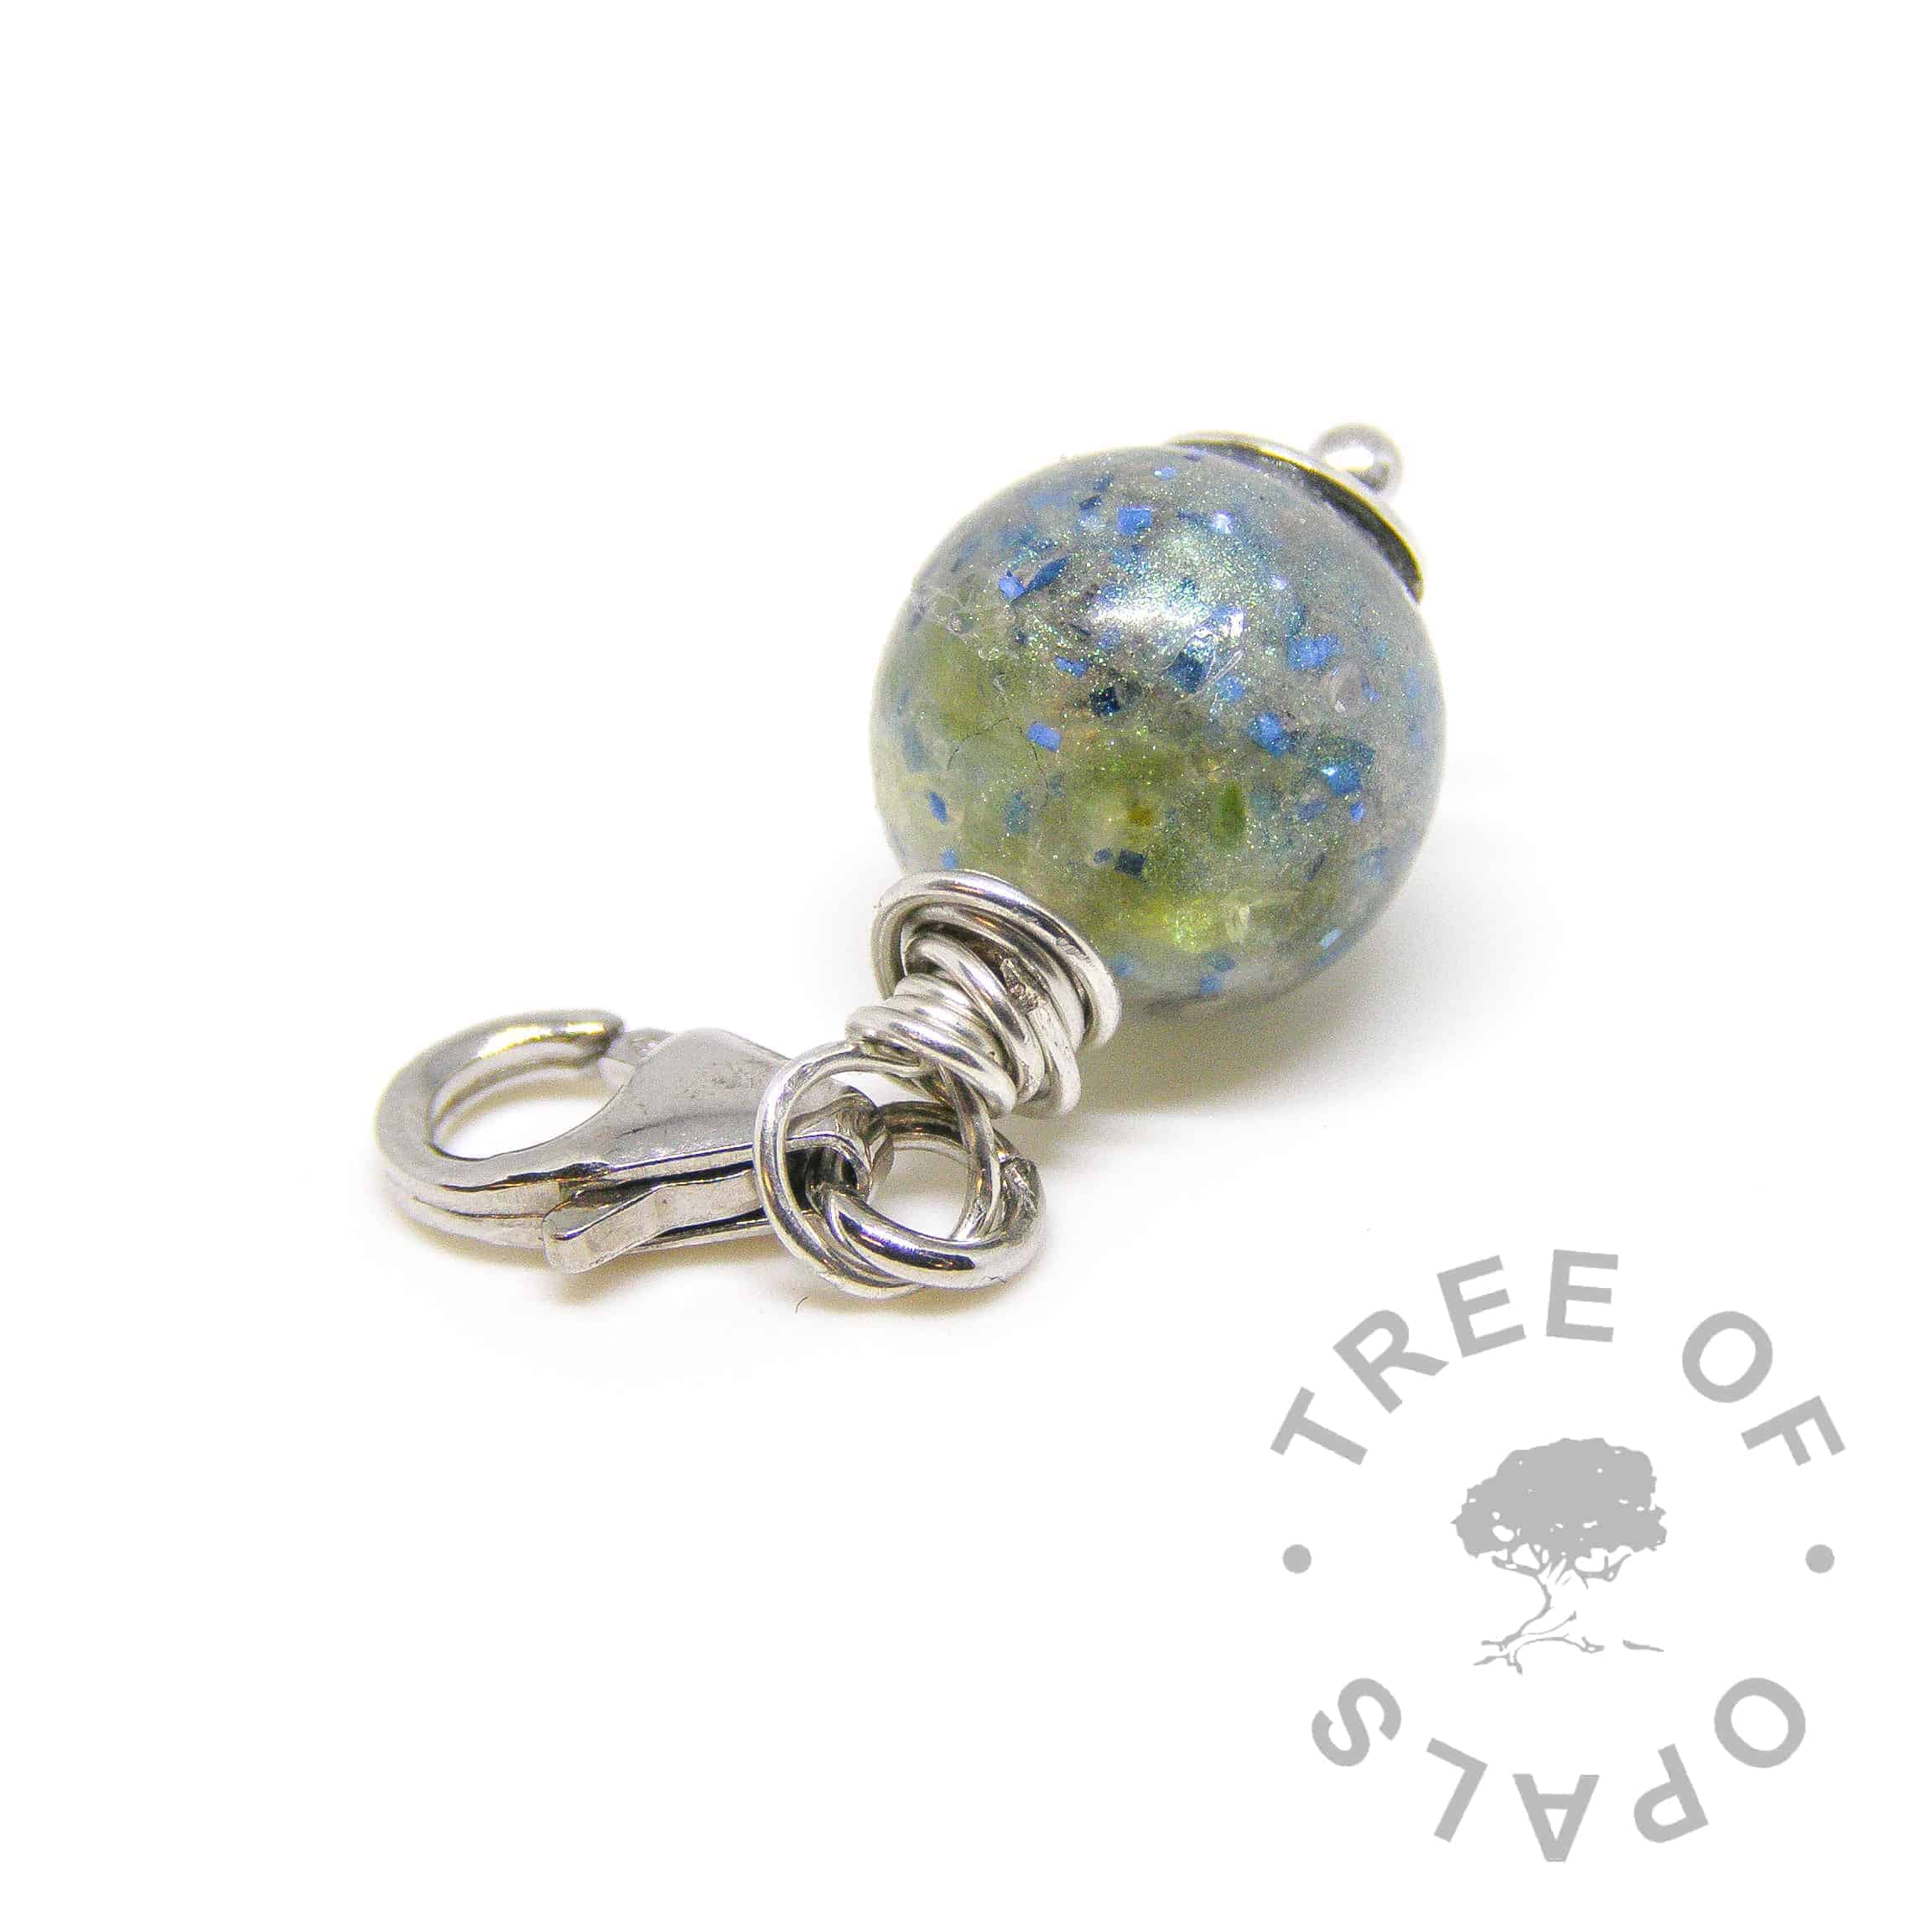 peridot cremation ash dangle charm, ashes pearl with peridot August birthstone and cobalt blue glitter, set with a lobster clasp ideal for large link bracelets and necklaces like the Thomas Sabo style